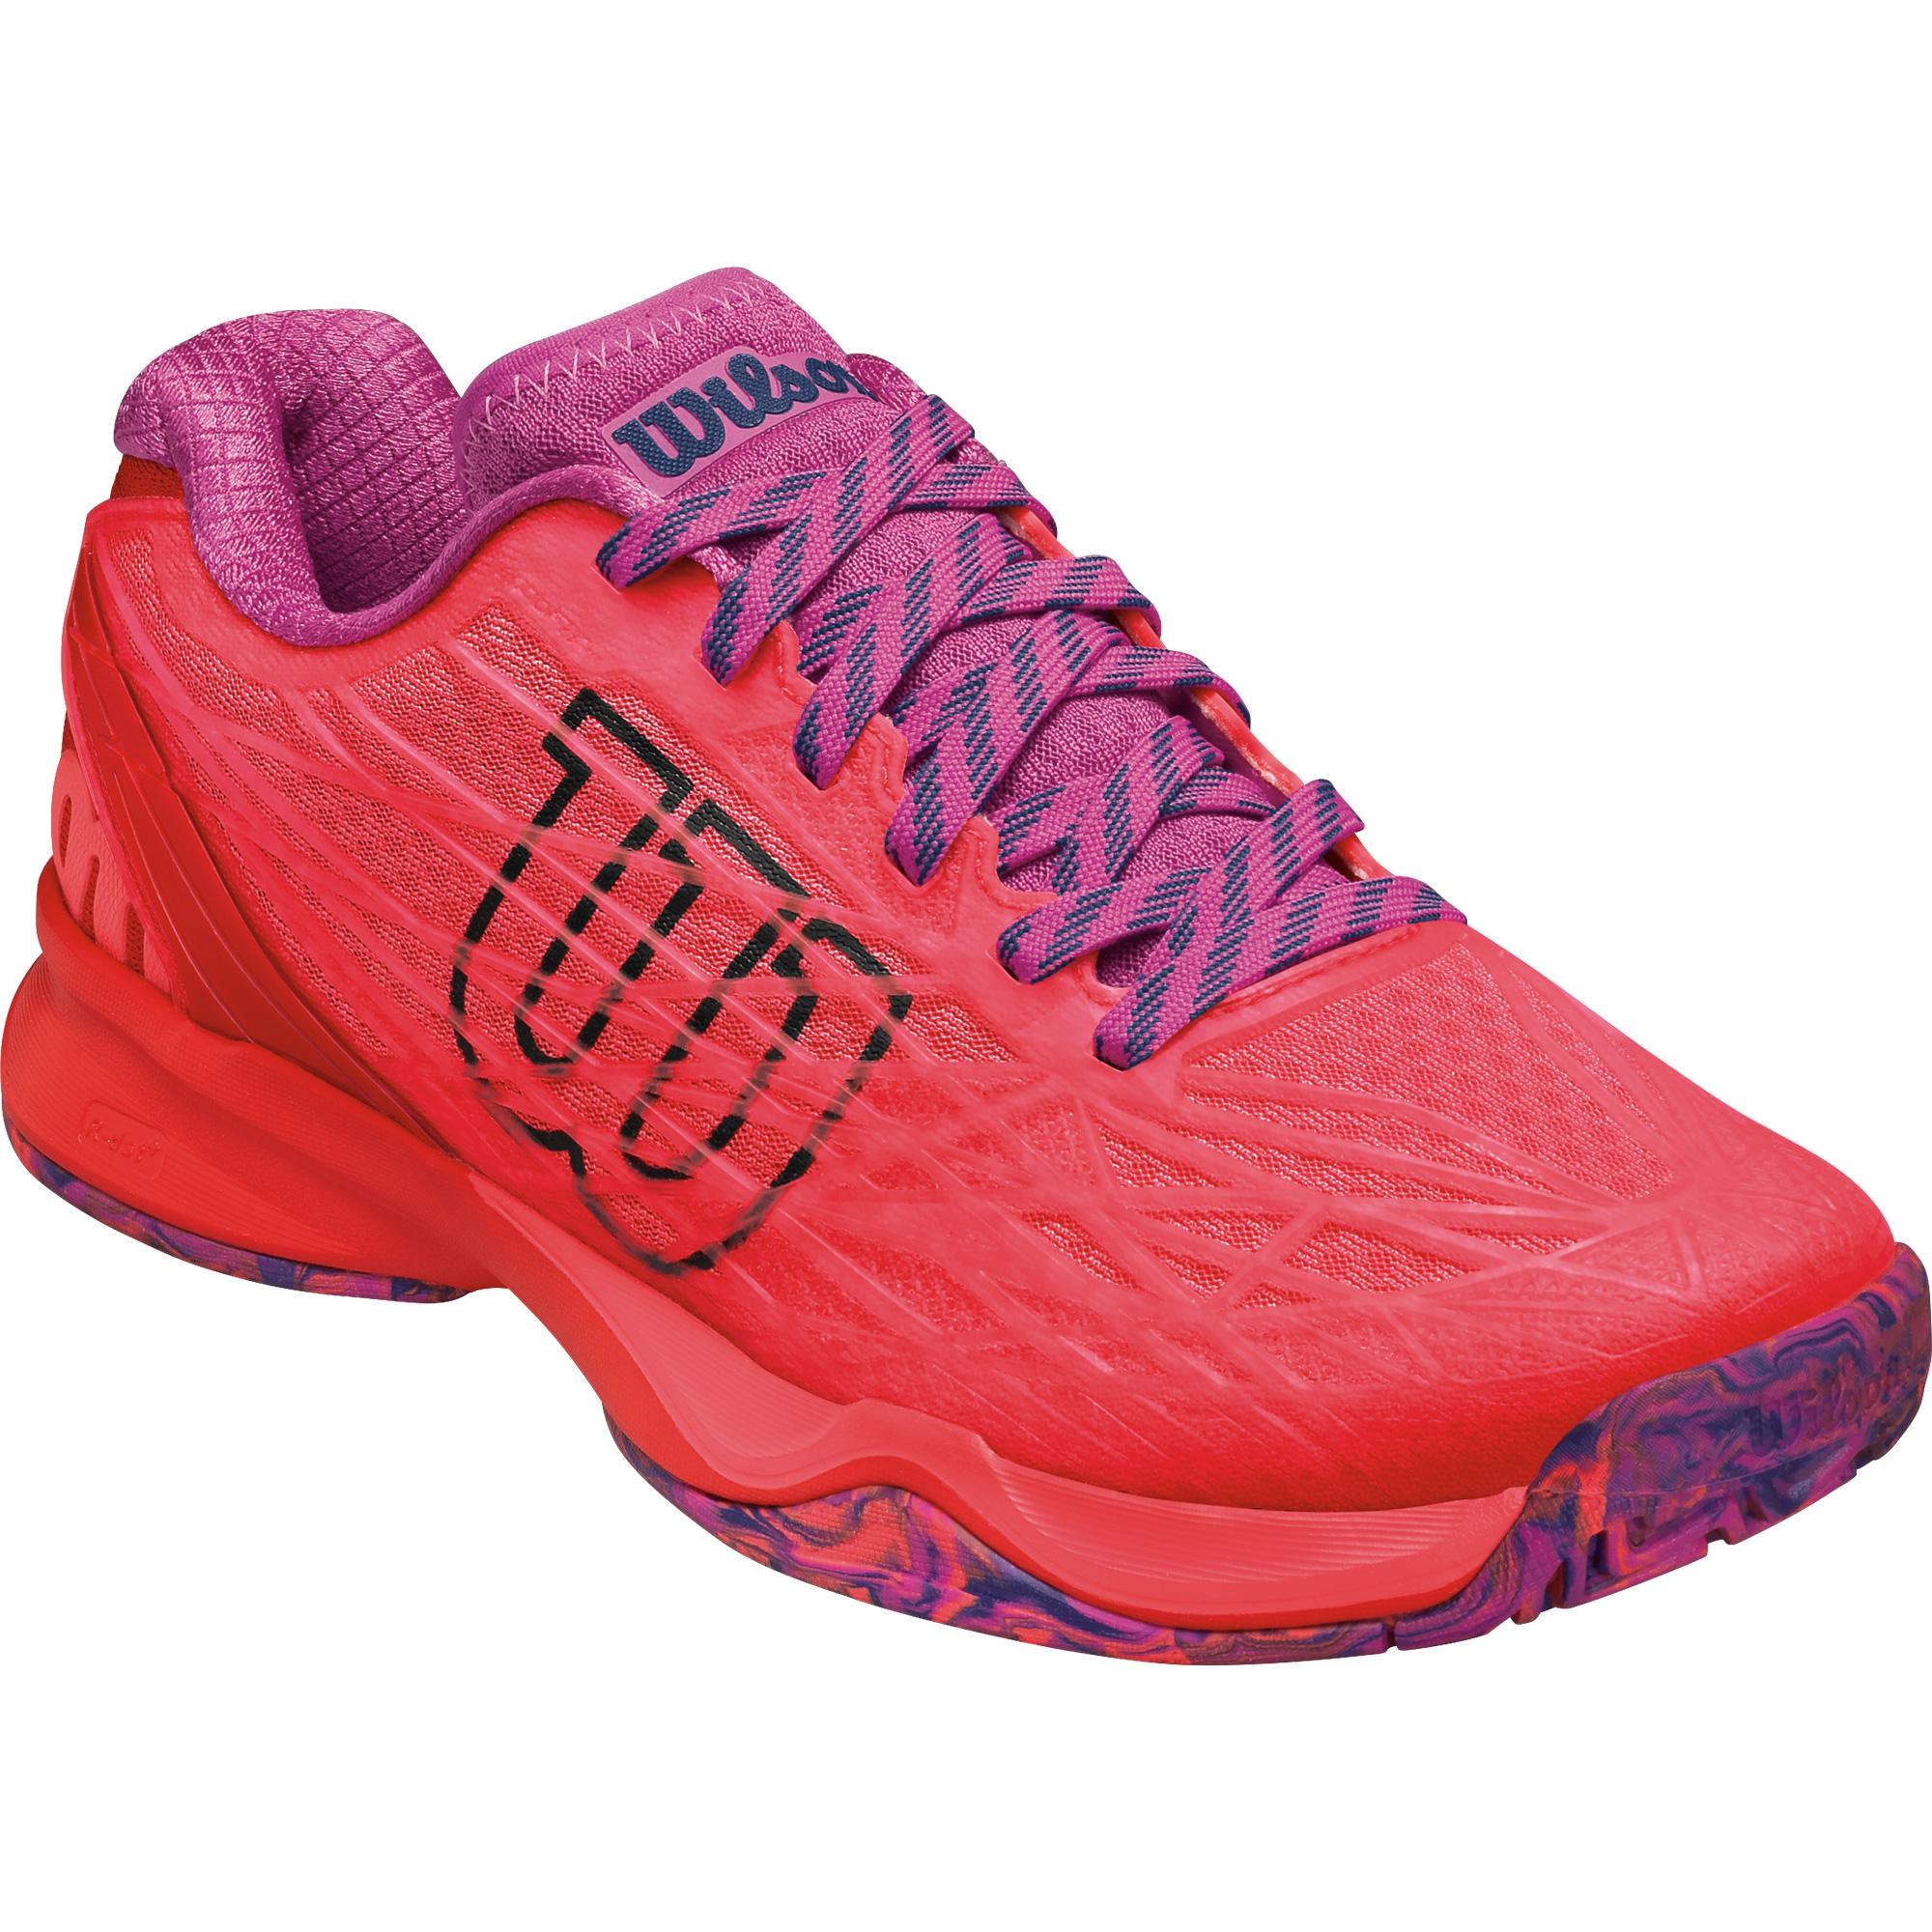 s clay court tennis shoes shoes for yourstyles